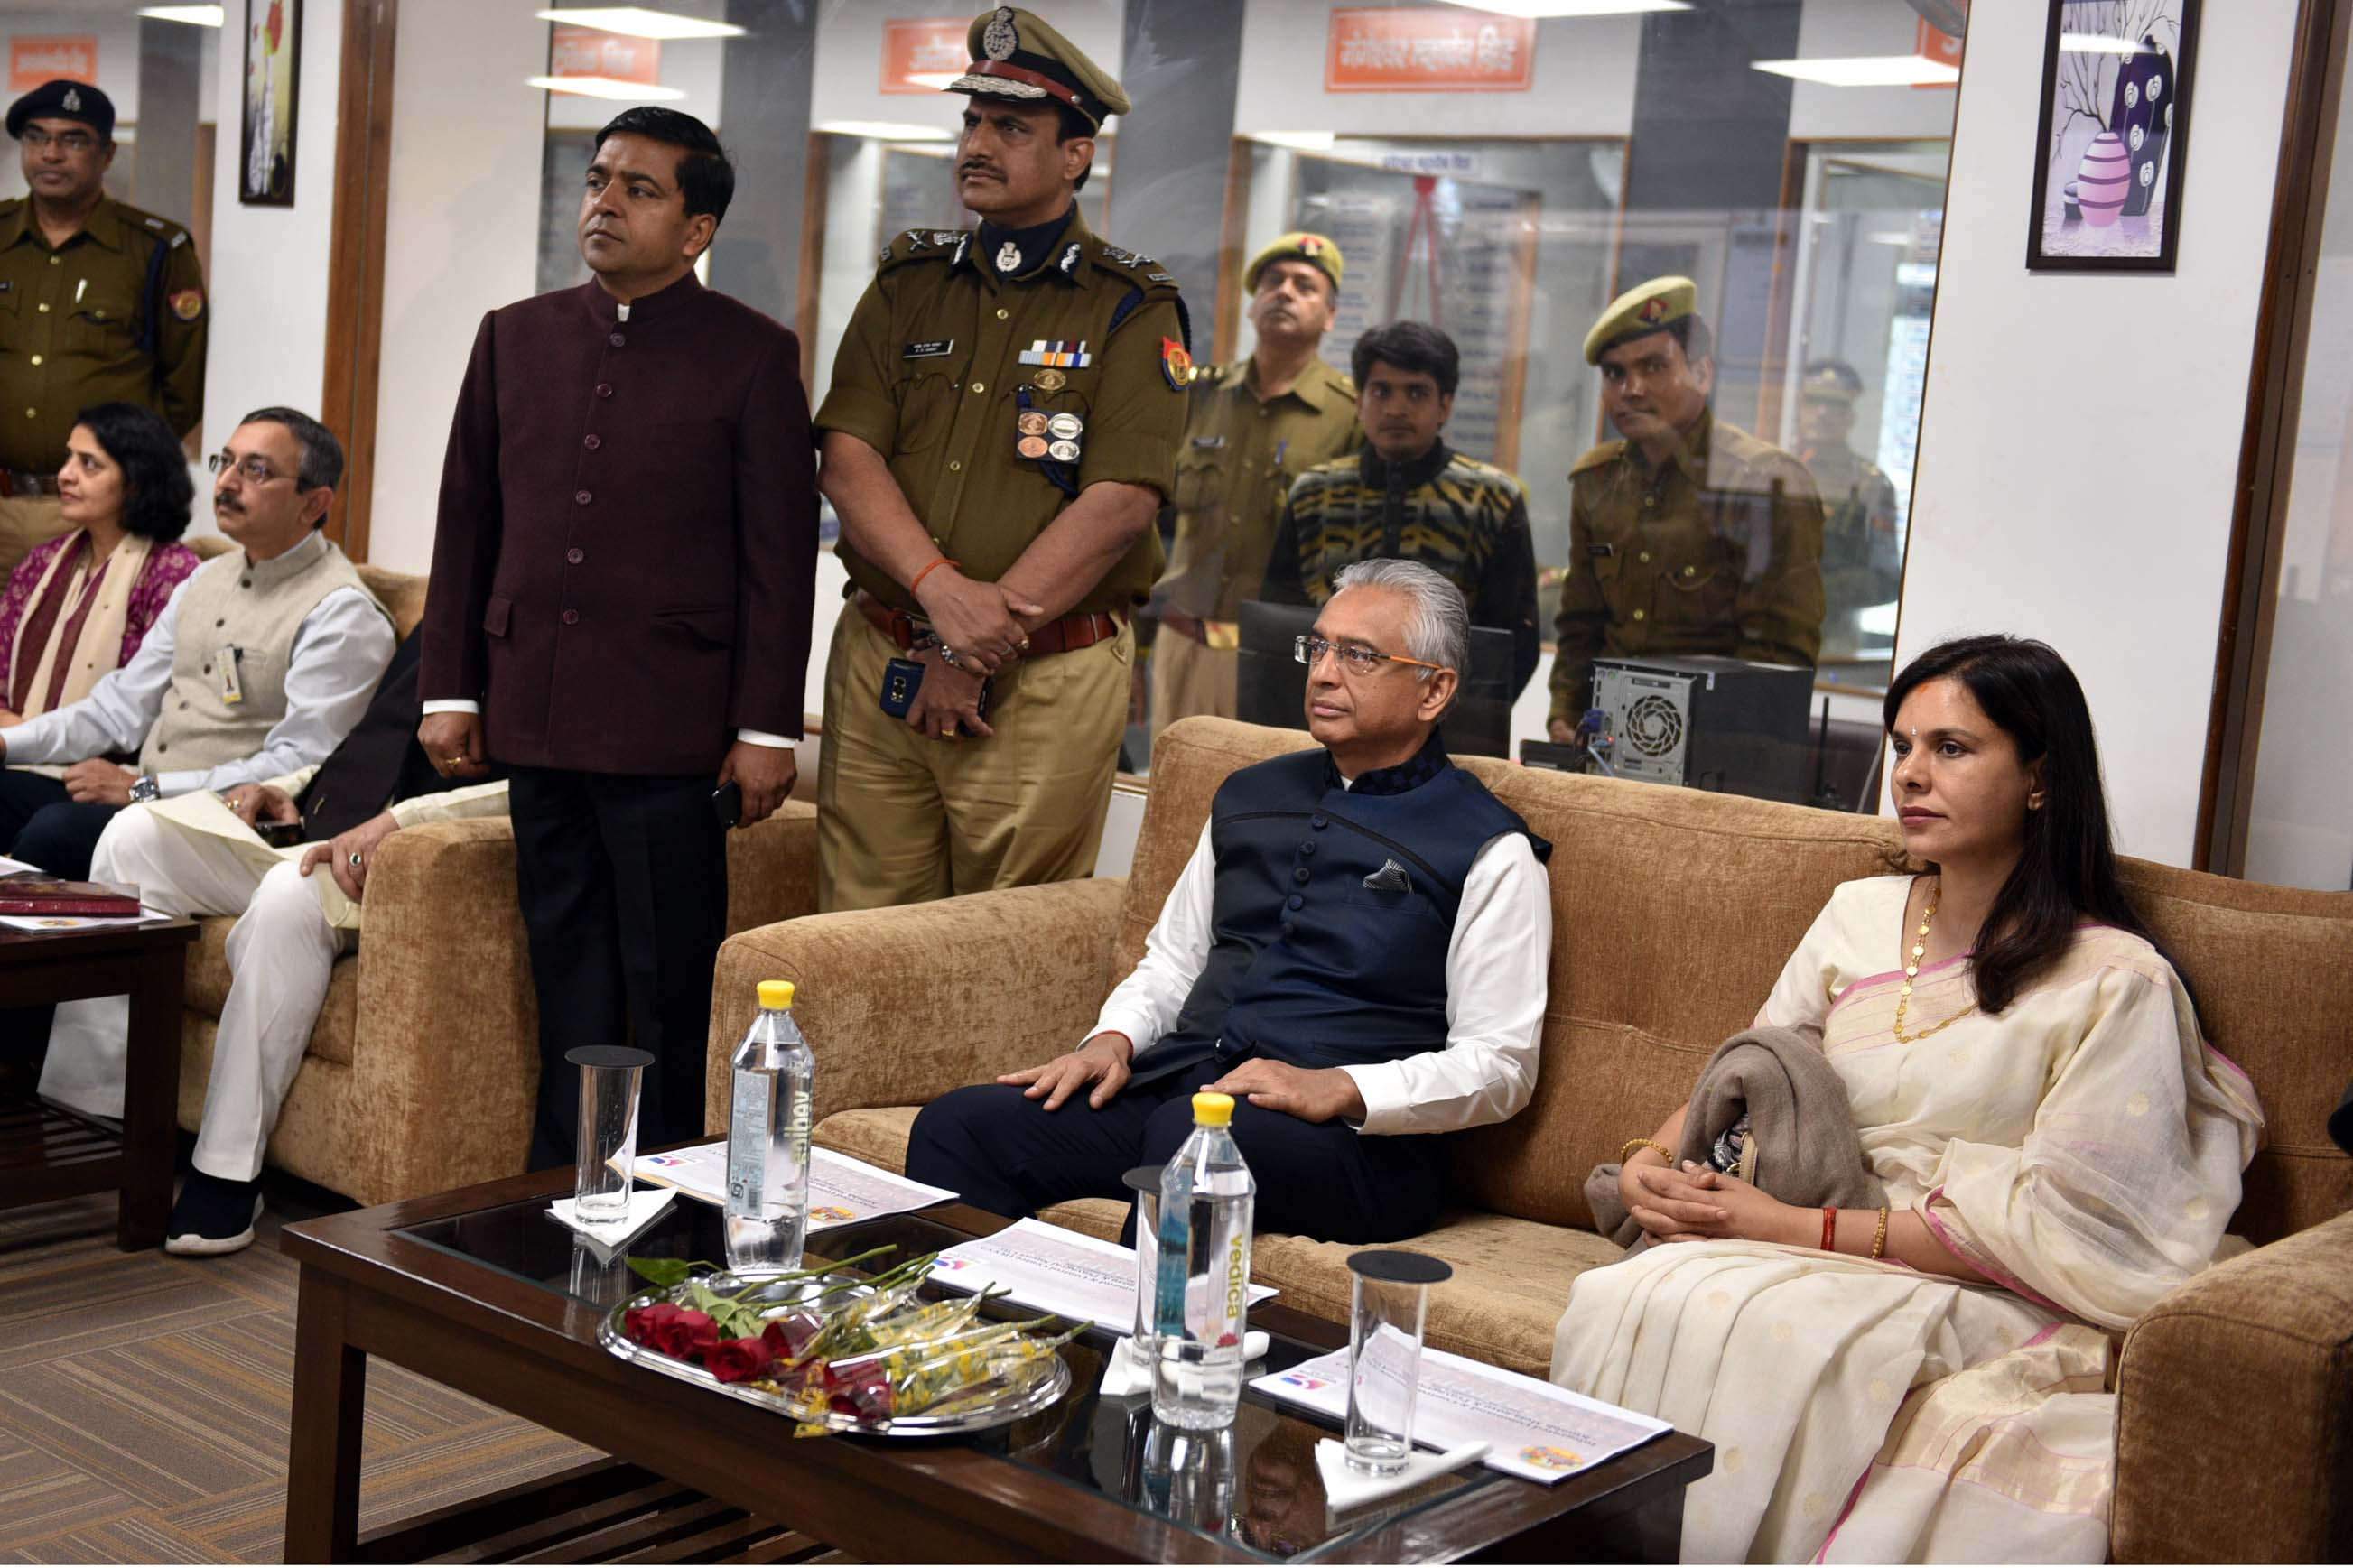 Pravind Jugnauth, Prime Minister of Mauritius also went to Kumbh's newly developed integrated command and control centre in Prayagraj. Photo: Connected to India